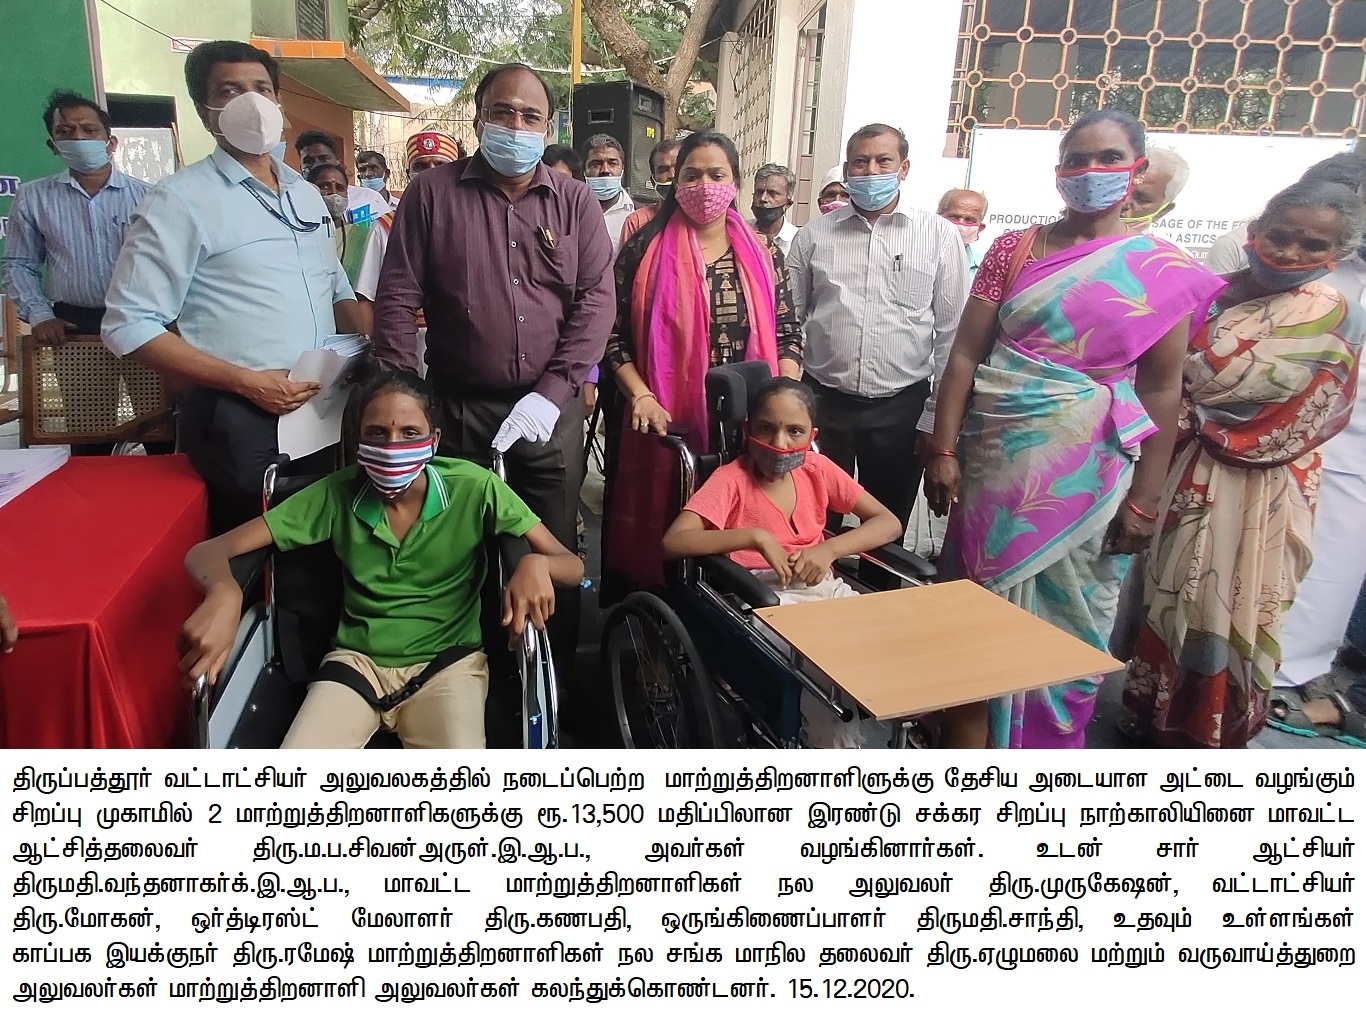 Physically challenged id card given by District Collector 15-12-2020